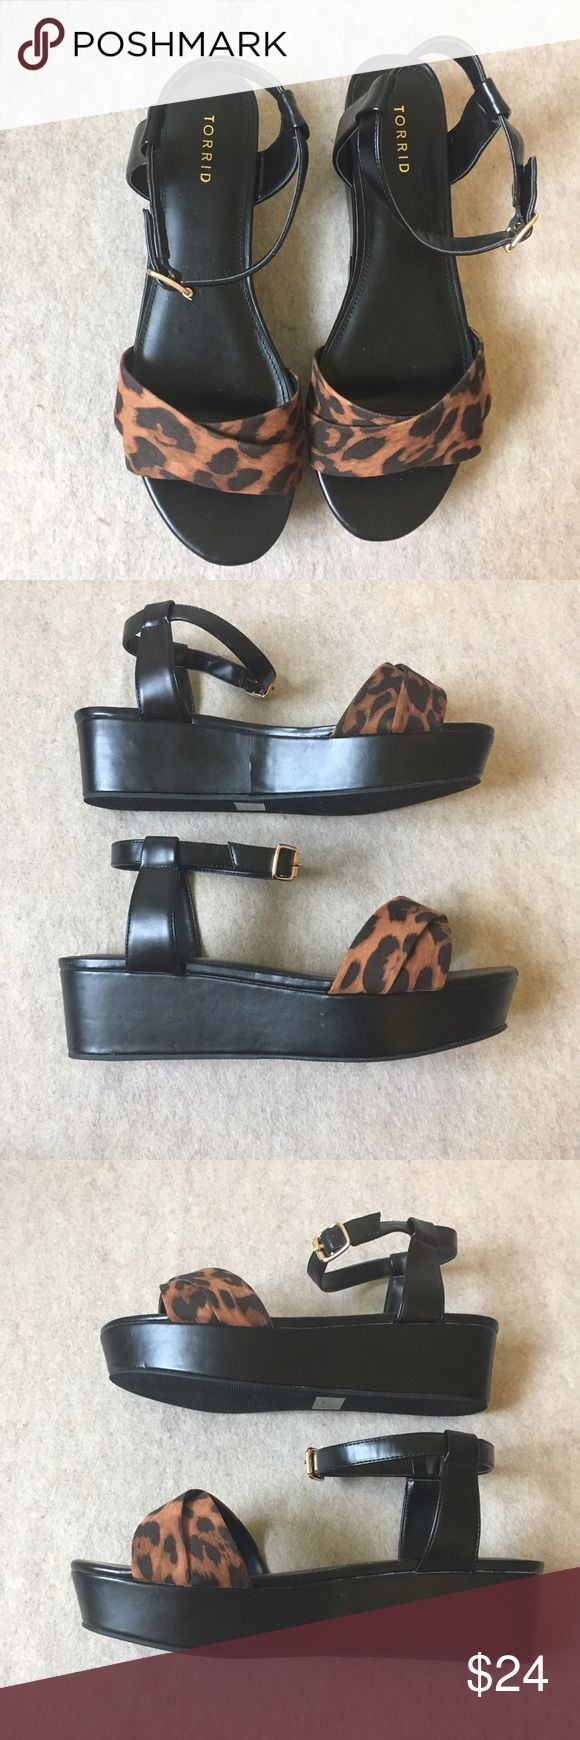 Torrid Black Platform Wedge Sandals Leopard 11W Torrid Black Platform Wedge Sandals With Leopard Print Straps Women's Size 11 Wide  Gently used, normal signs of wear. Please see all photos torrid Shoes Platforms